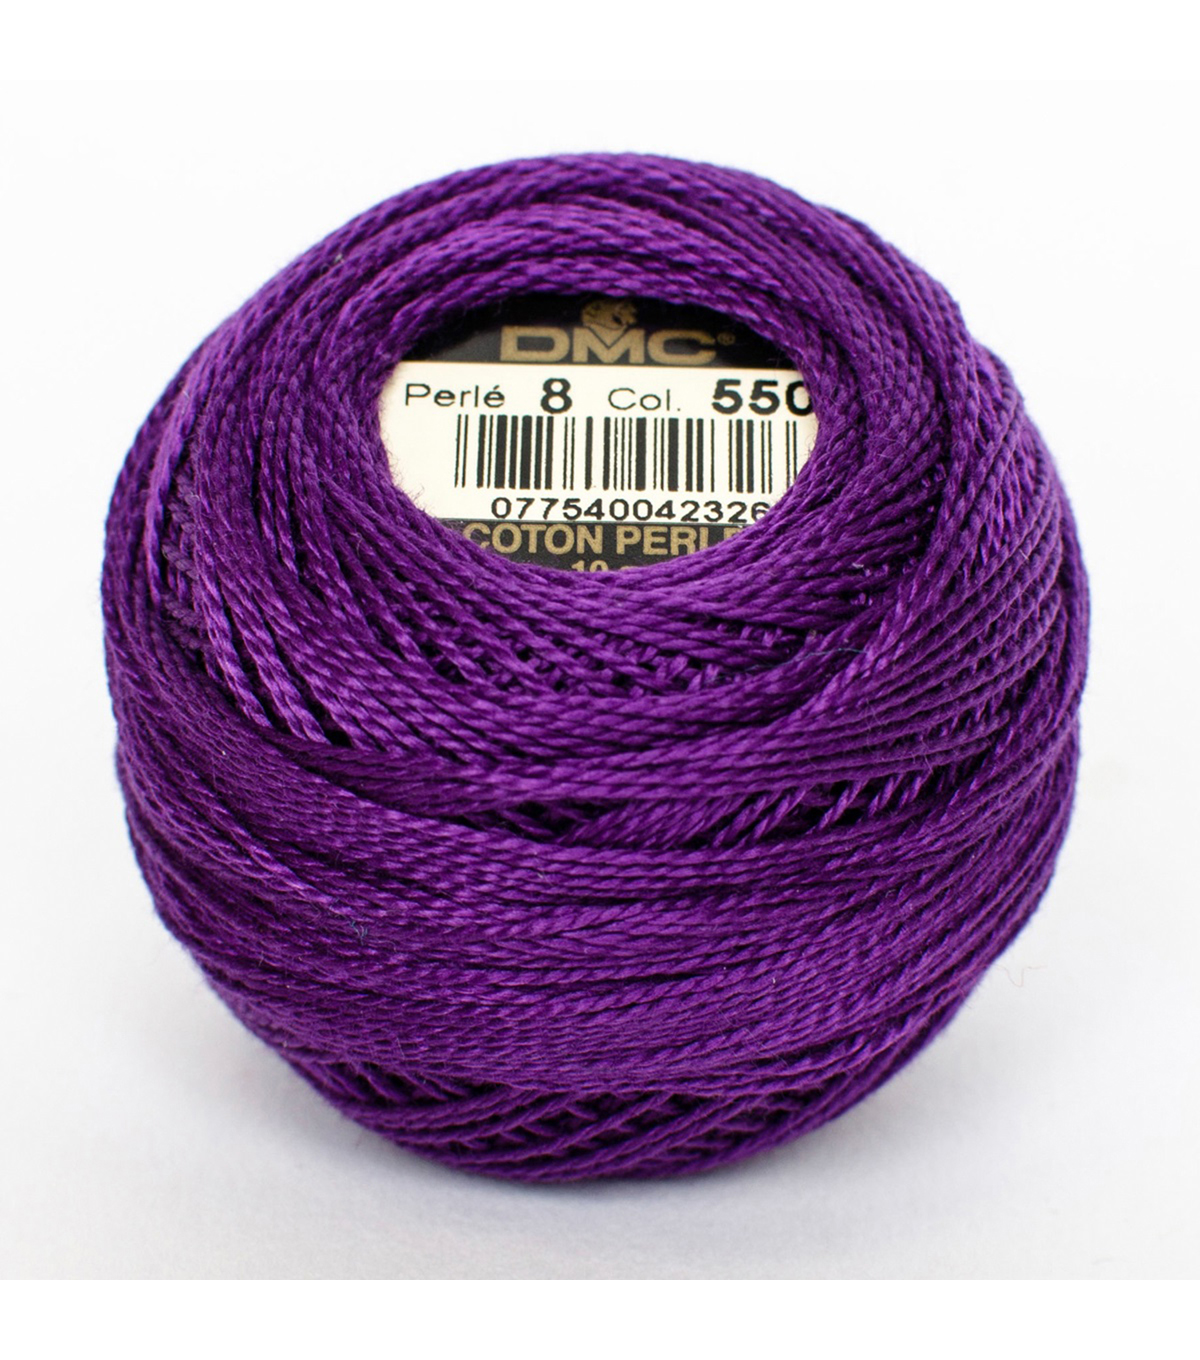 DMC Pearl Cotton Balls Thread 87 Yds Size 8, Very Dark Violet